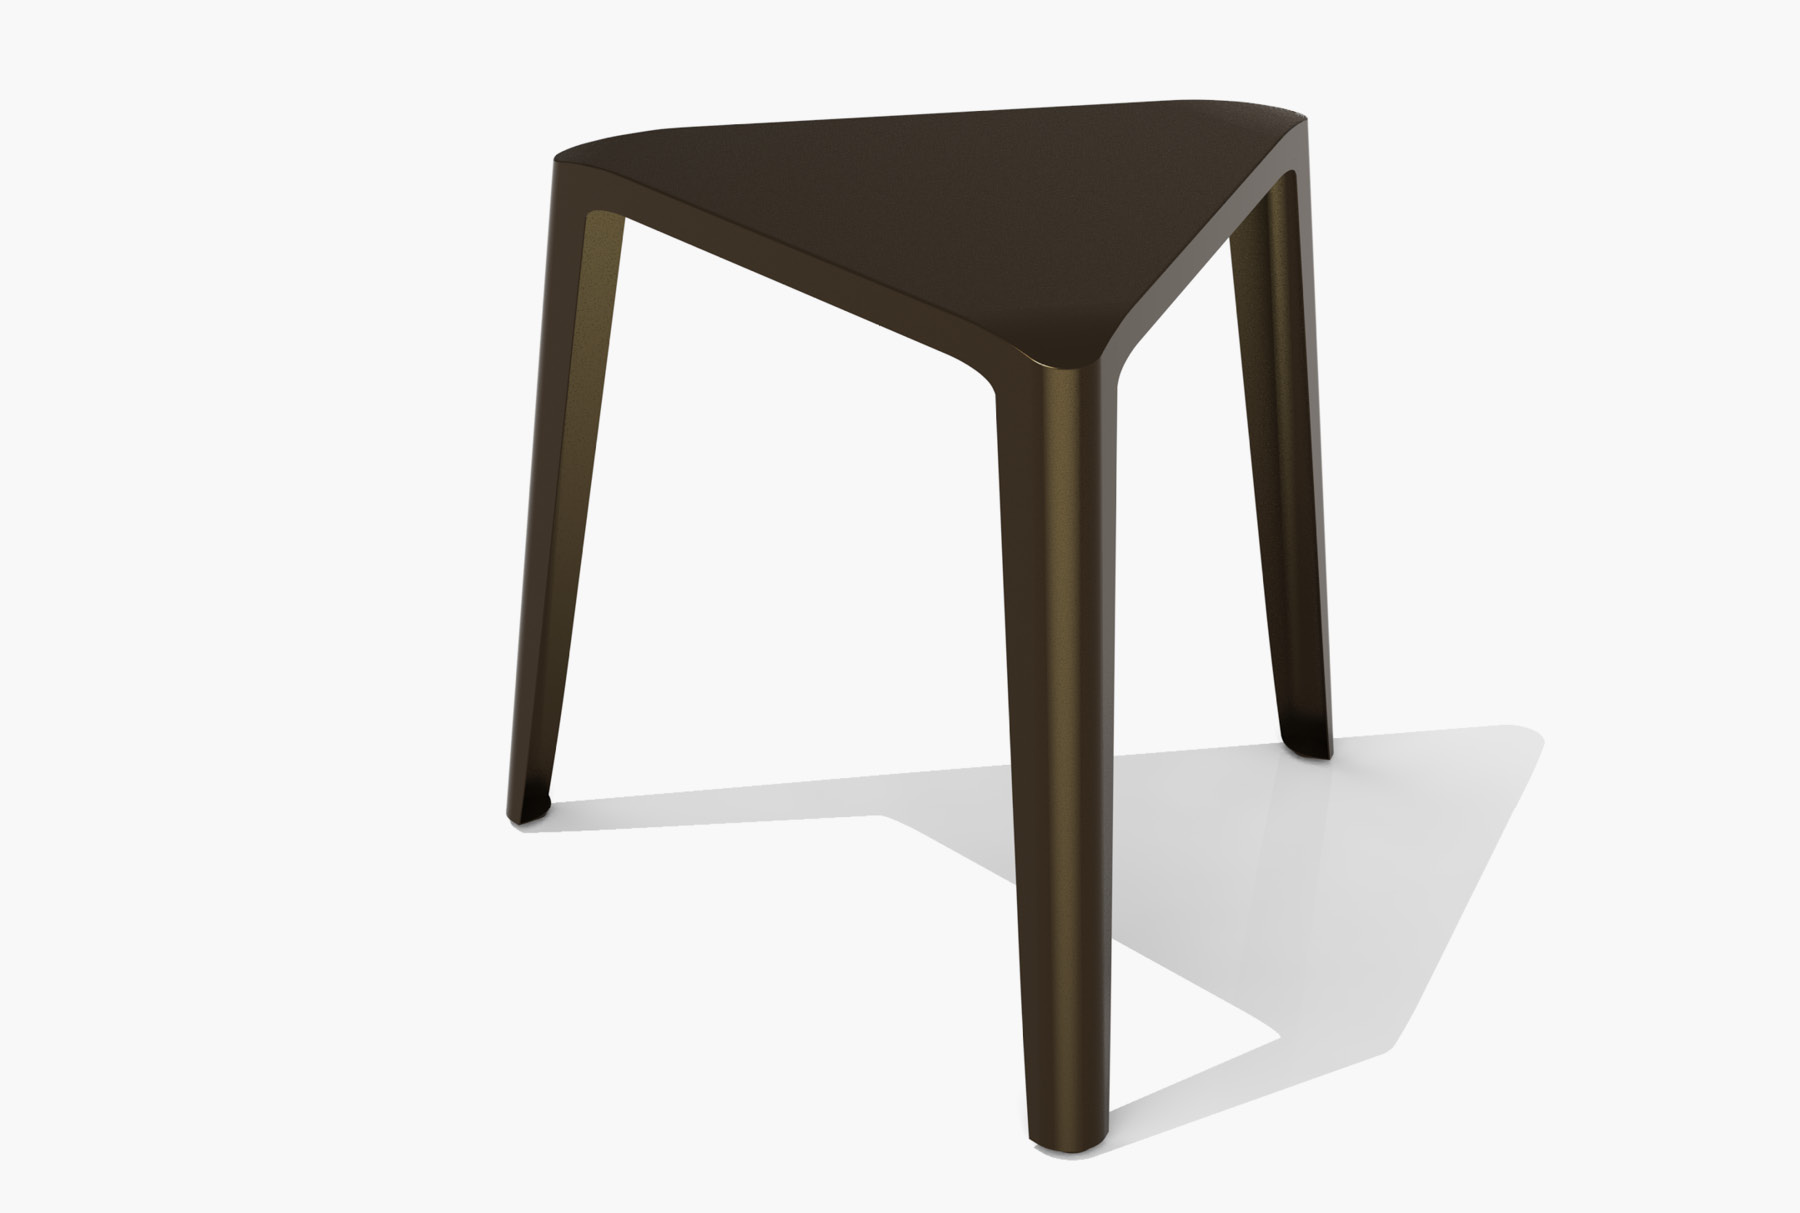 Arktura Clic Low Stool in Burnished Bronze